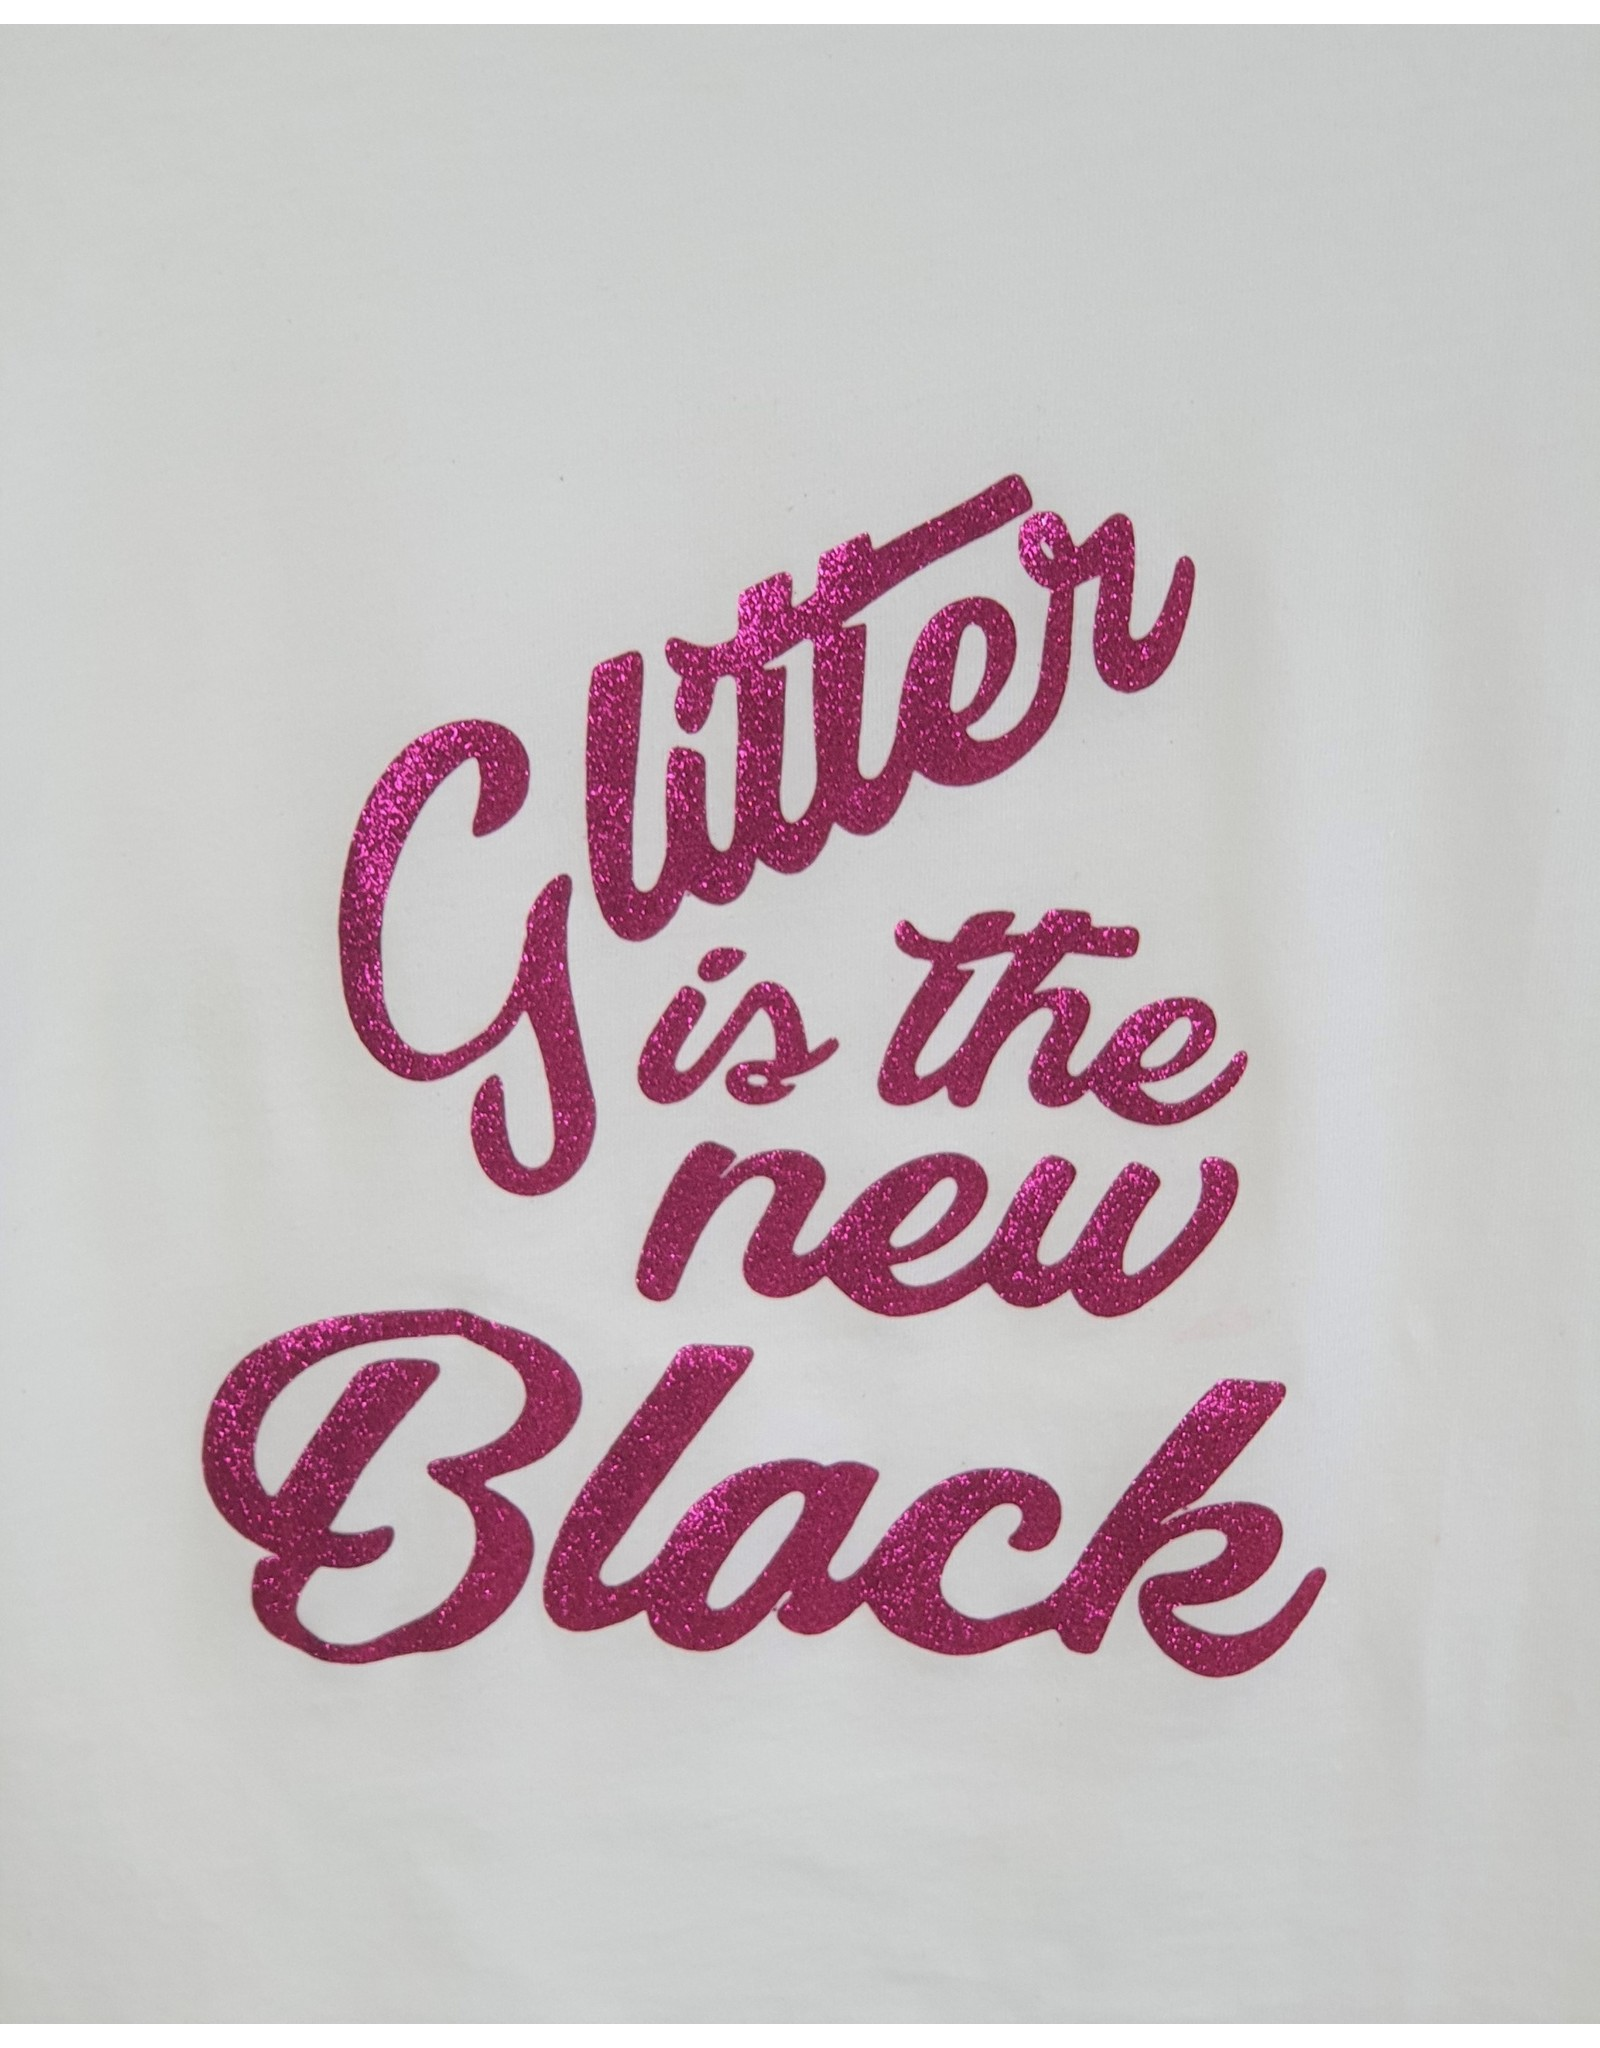 Shirt glitter is the new black